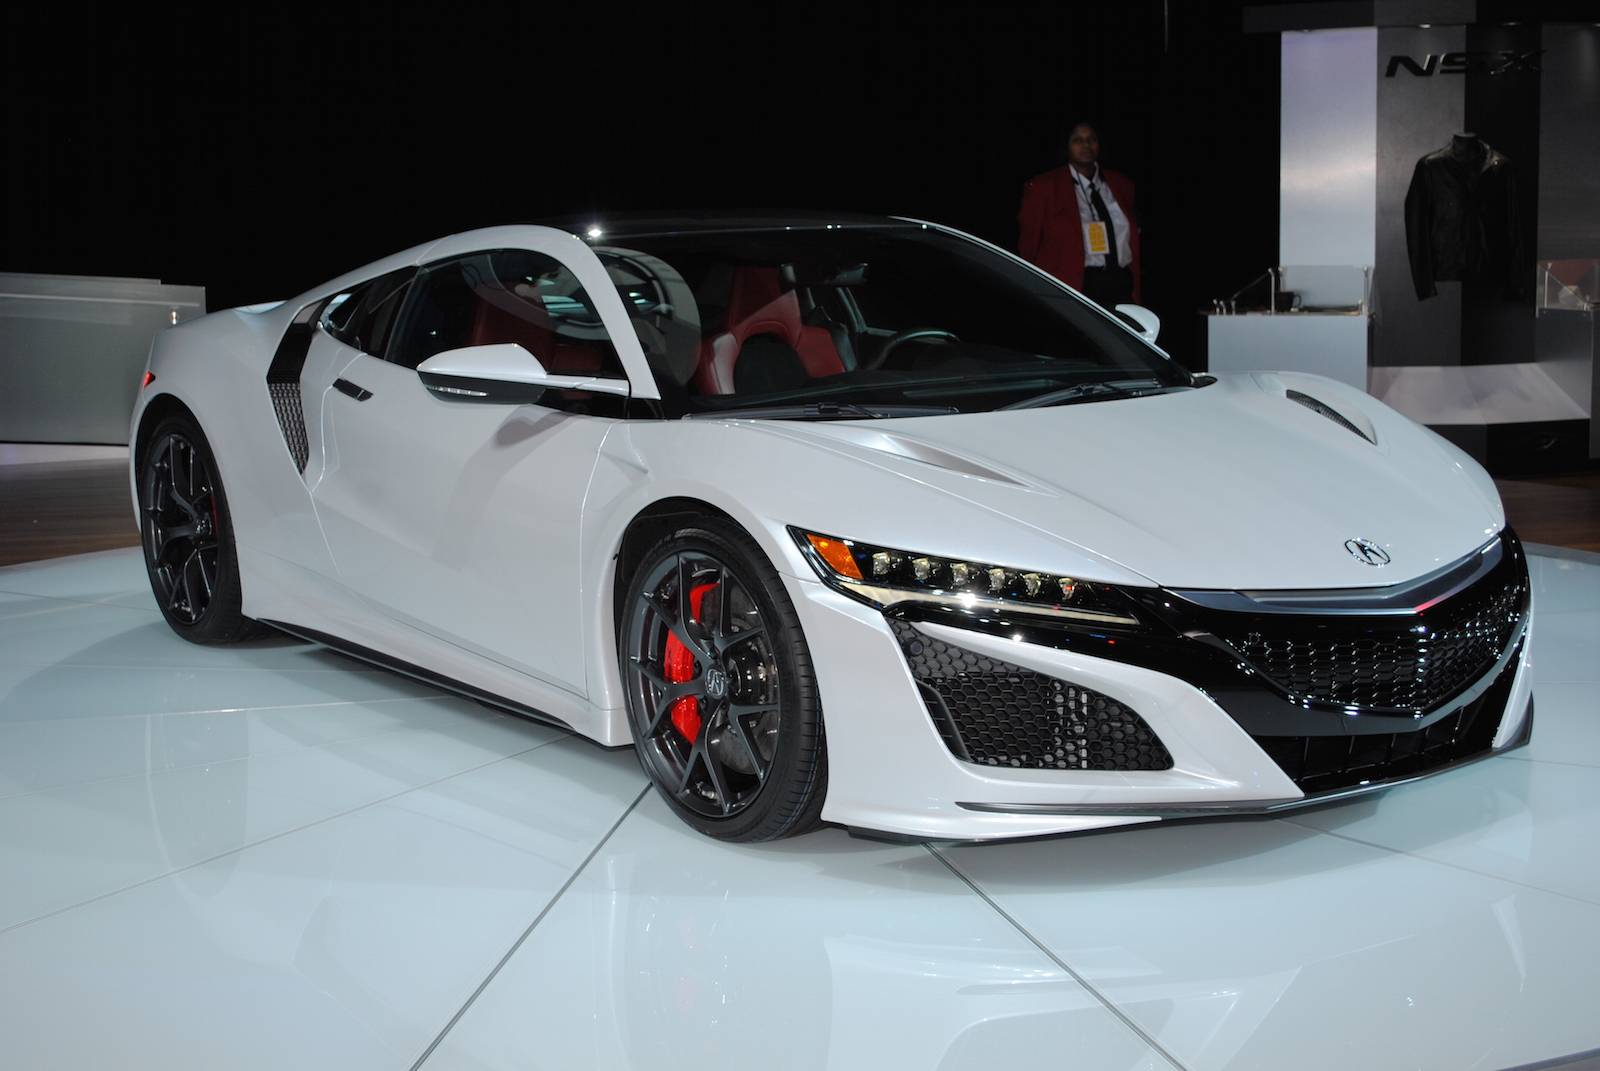 acura nsx 2016 white. acura hasnu0027t announced the latest engineu0027s specifications yet while v6 alone should deliver about 500 hp add in equivalent electric horsepower through nsx 2016 white i